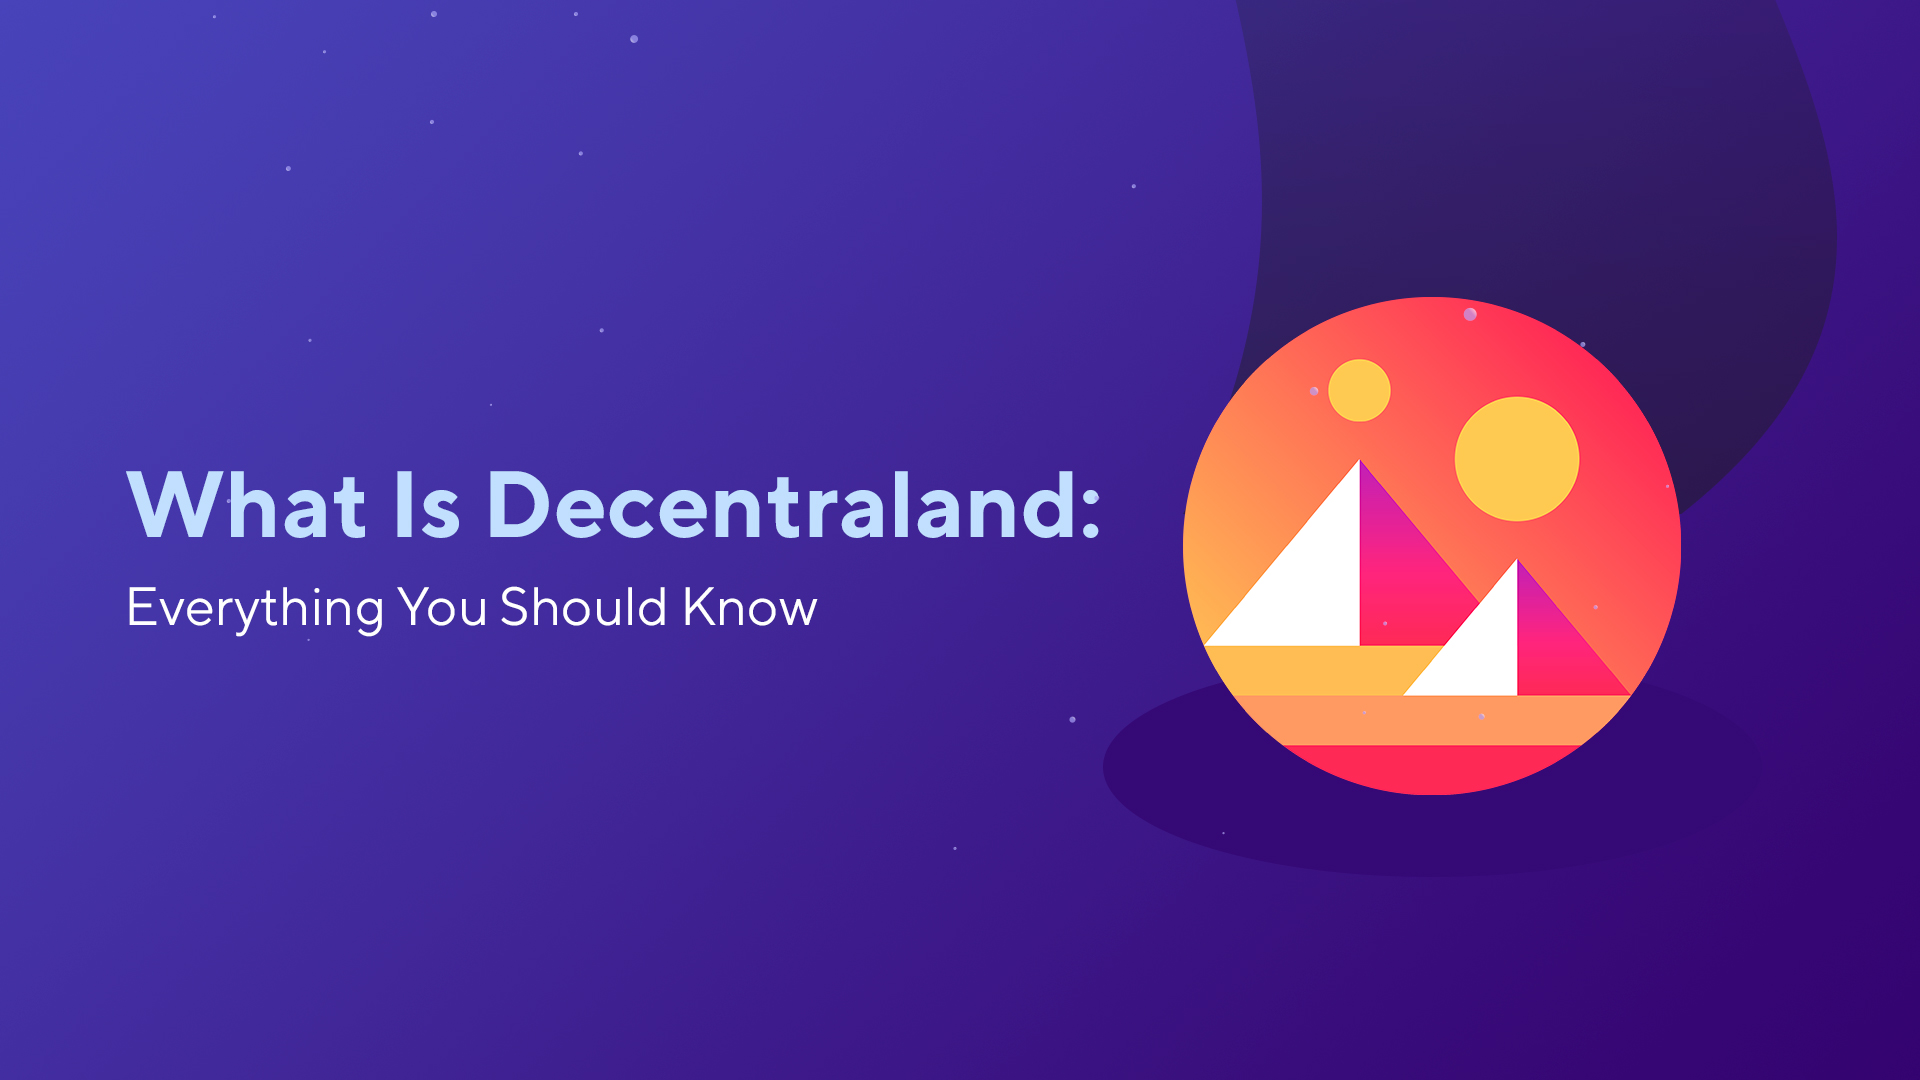 What Is Decentraland: Everything You Should Know